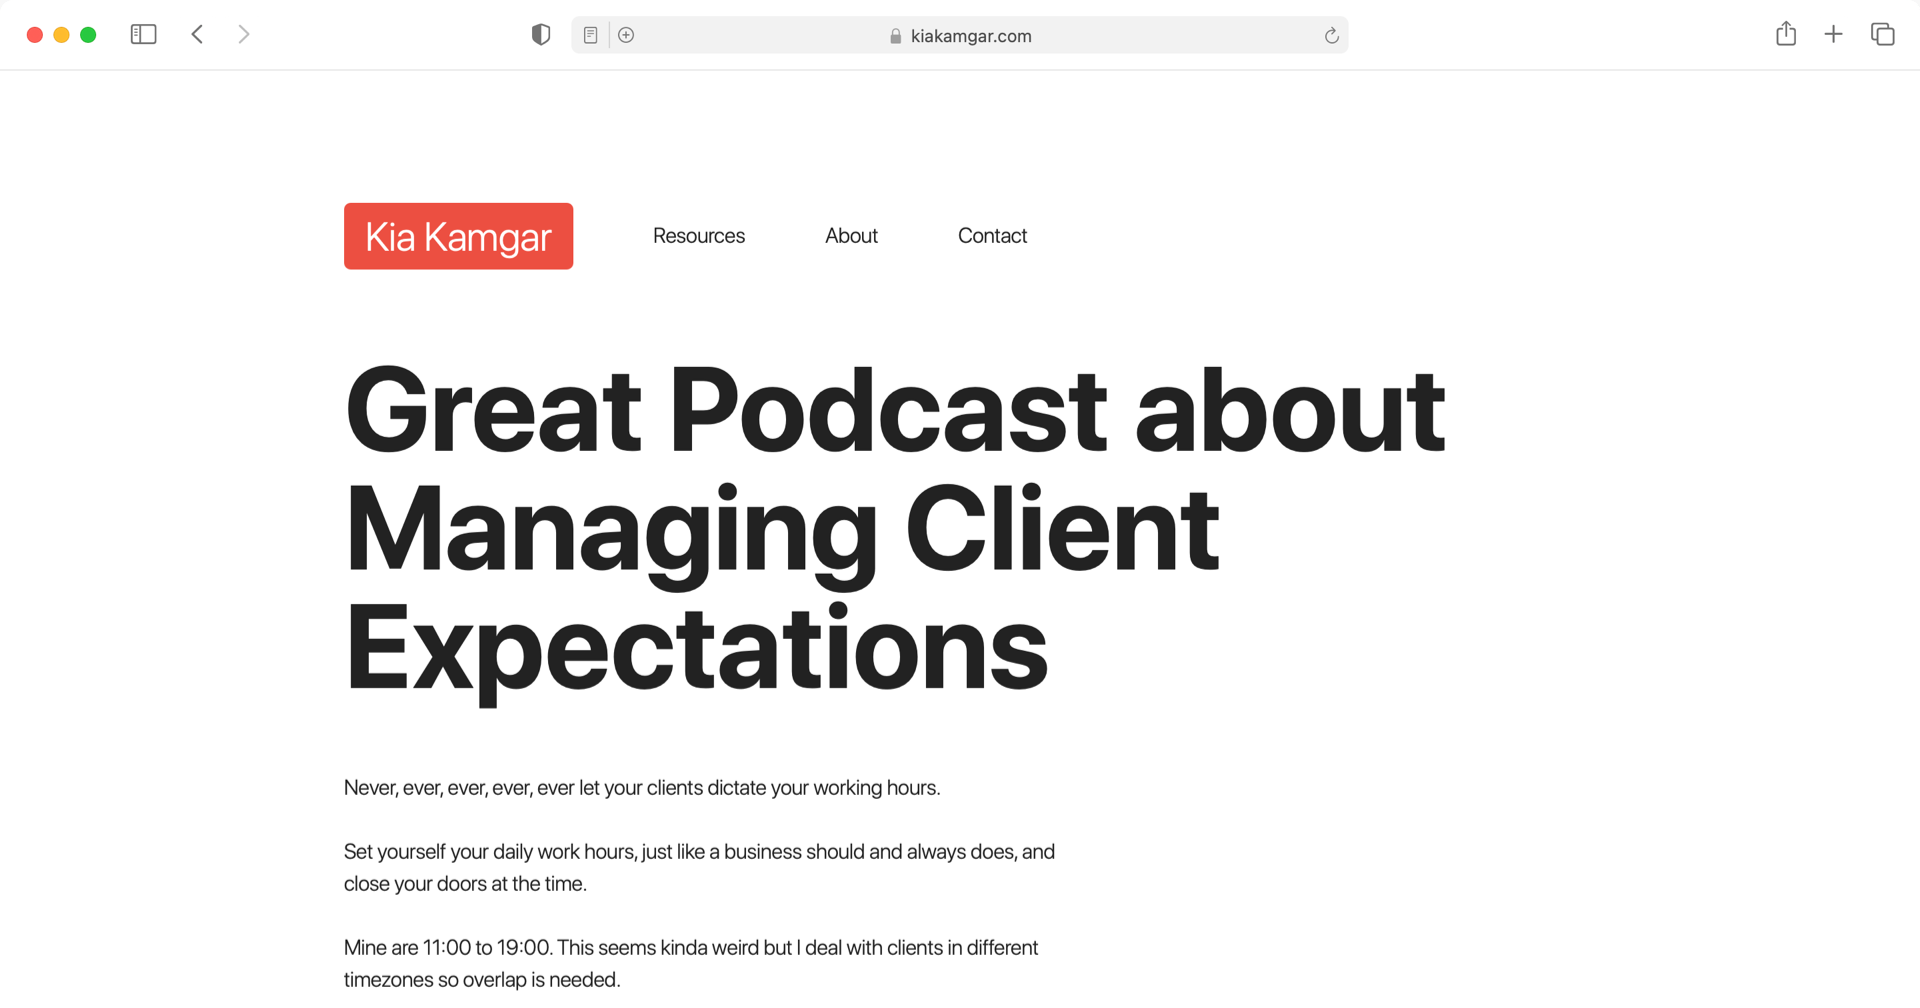 Great Podcast about Managing Client Expectations